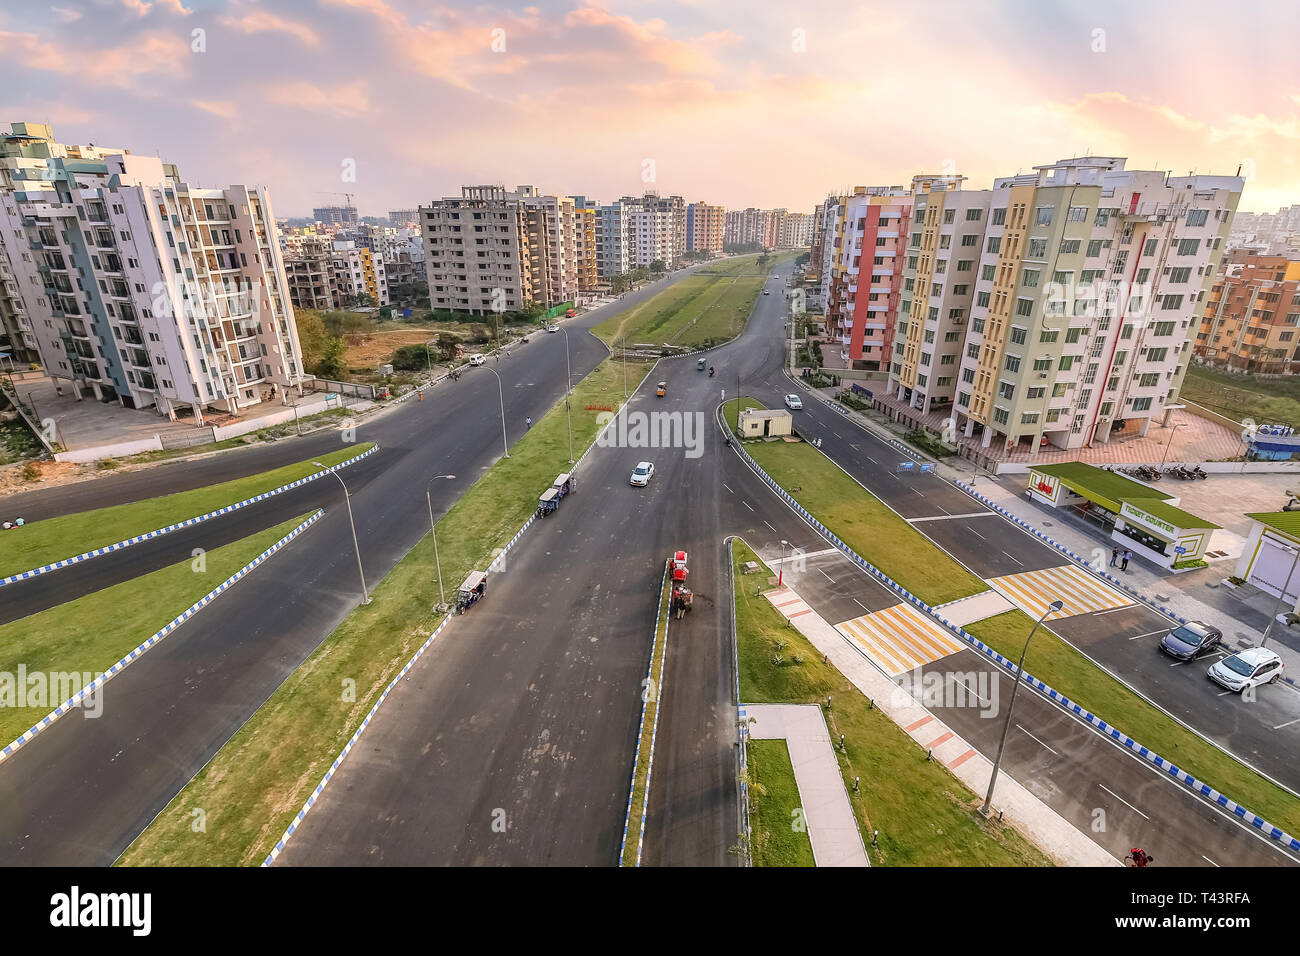 City residential building apartments with city roads in aerial view at sunset. Photograph shot at Newtown Rajarhat area of Kolkata, India - Stock Image